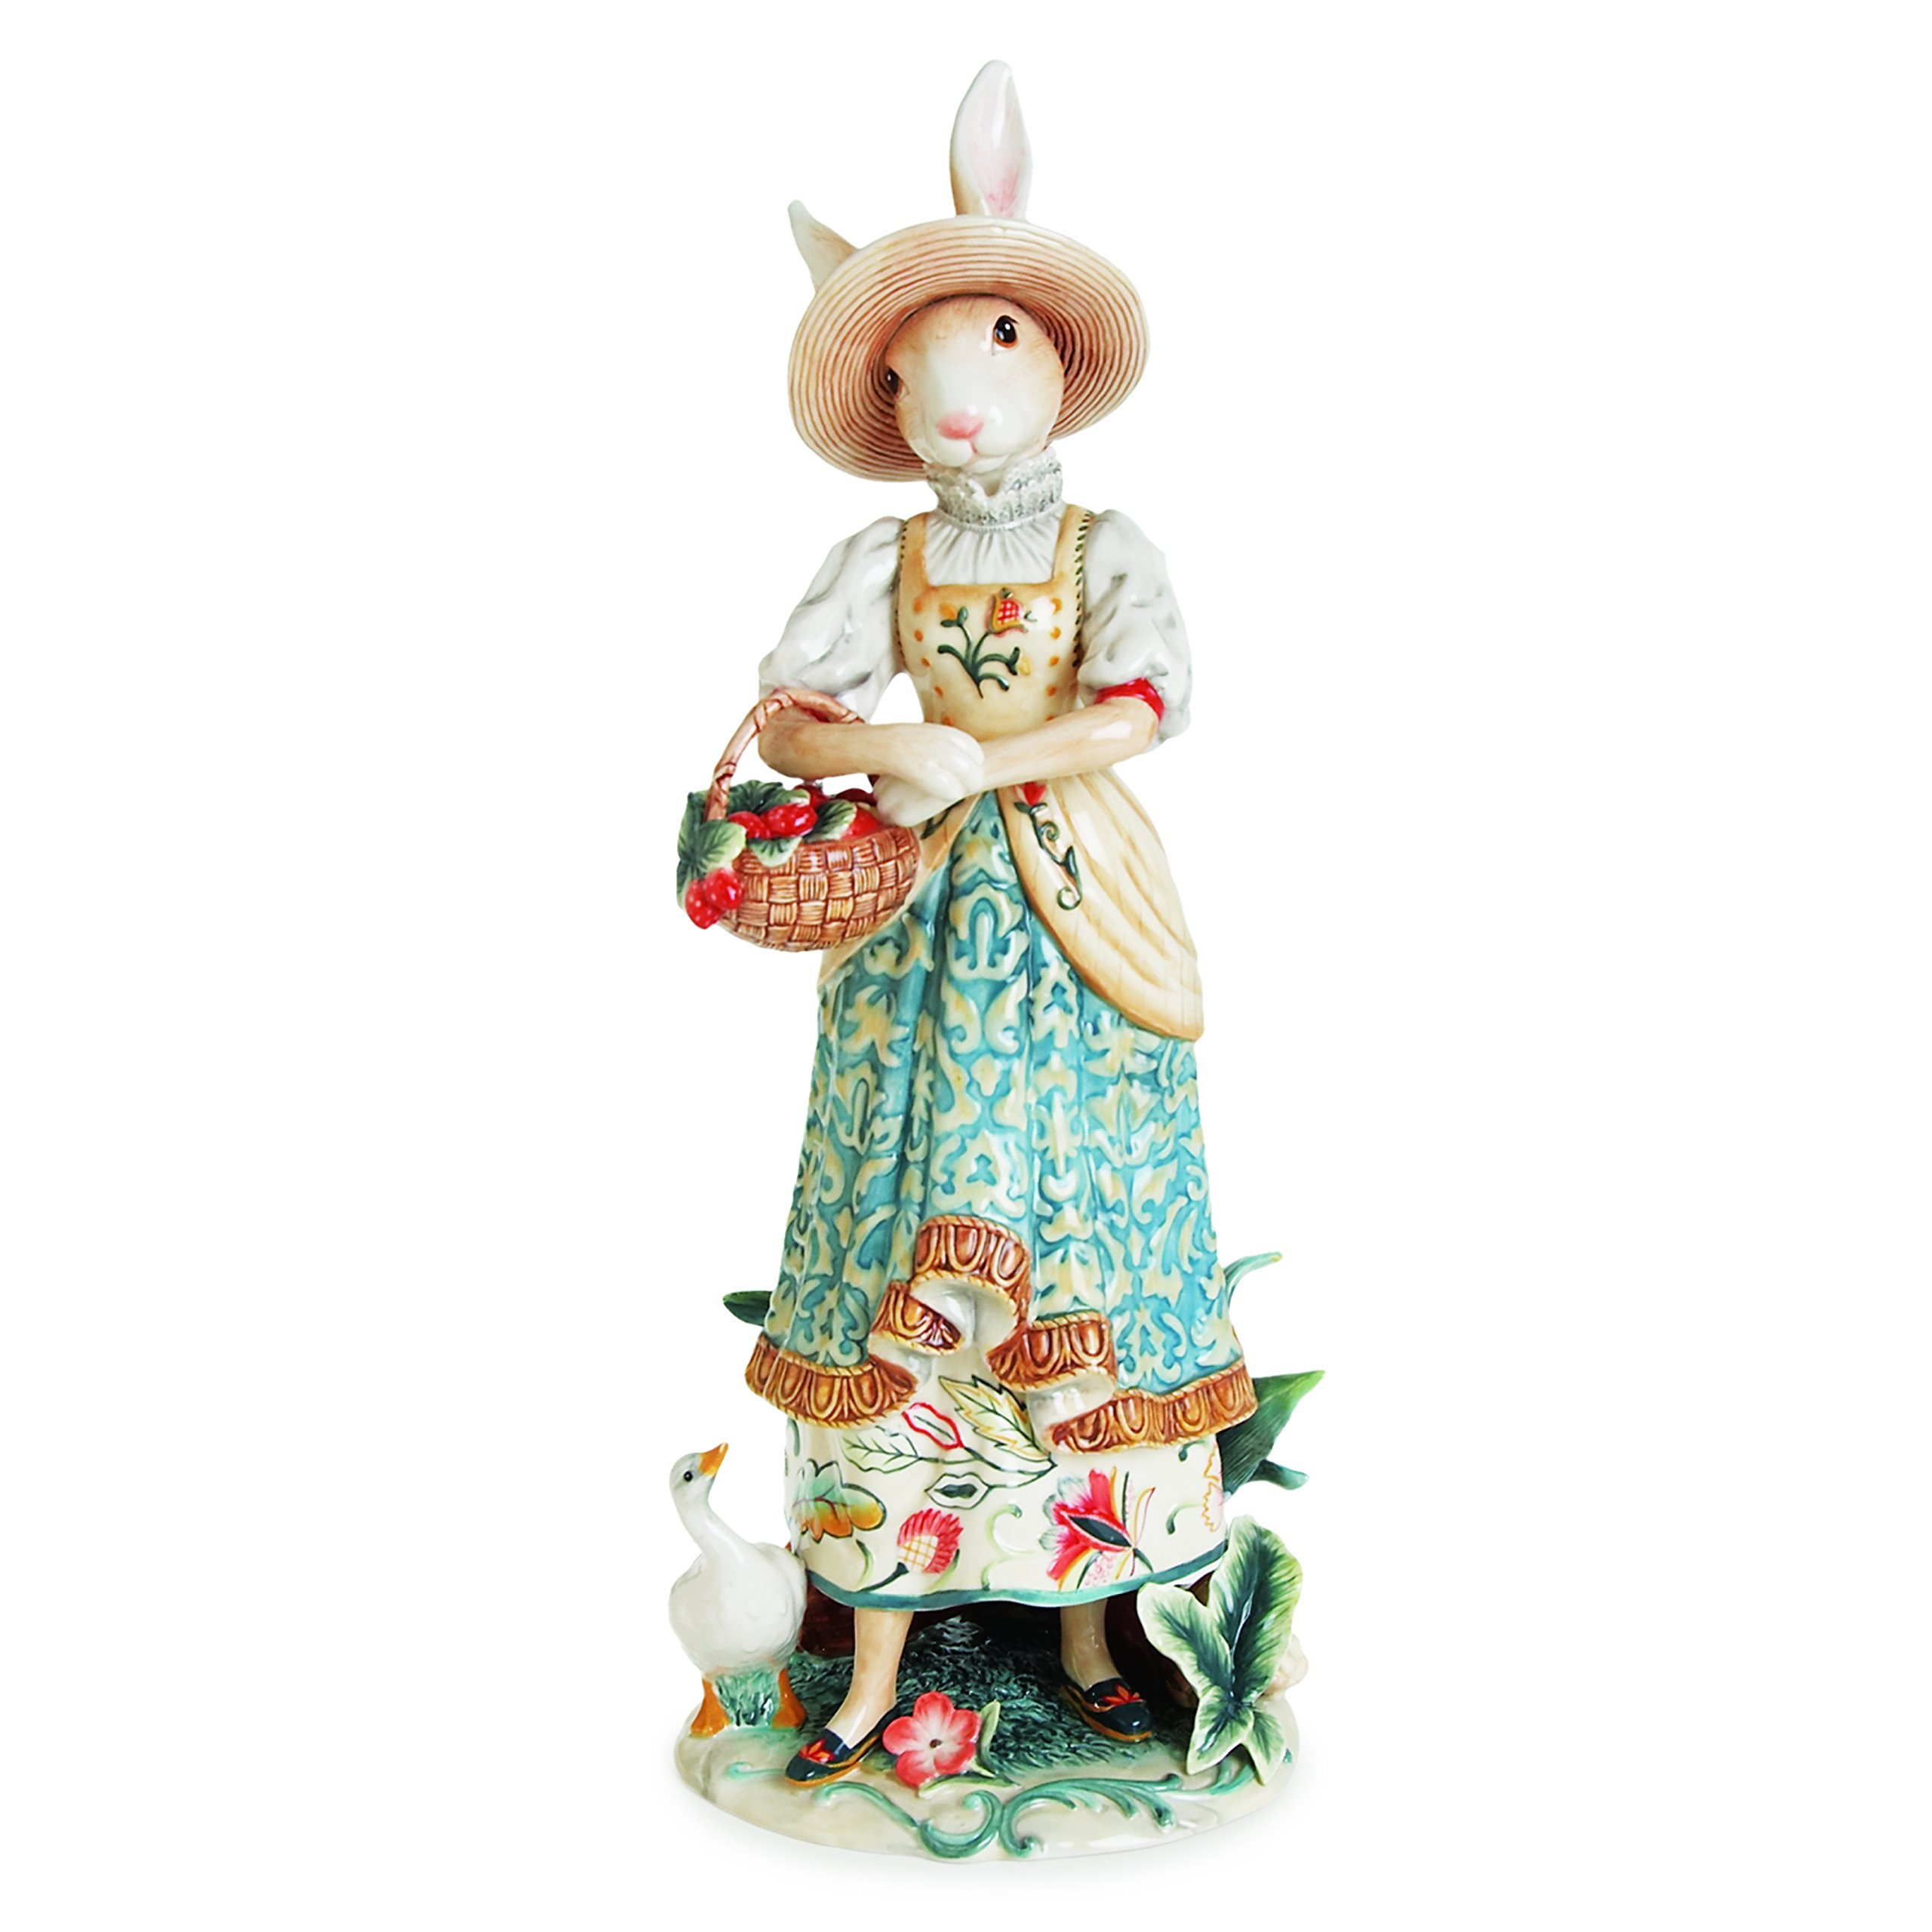 Fitz and Floyd Dapper Rabbit Female Figurine, White by Fitz and Floyd